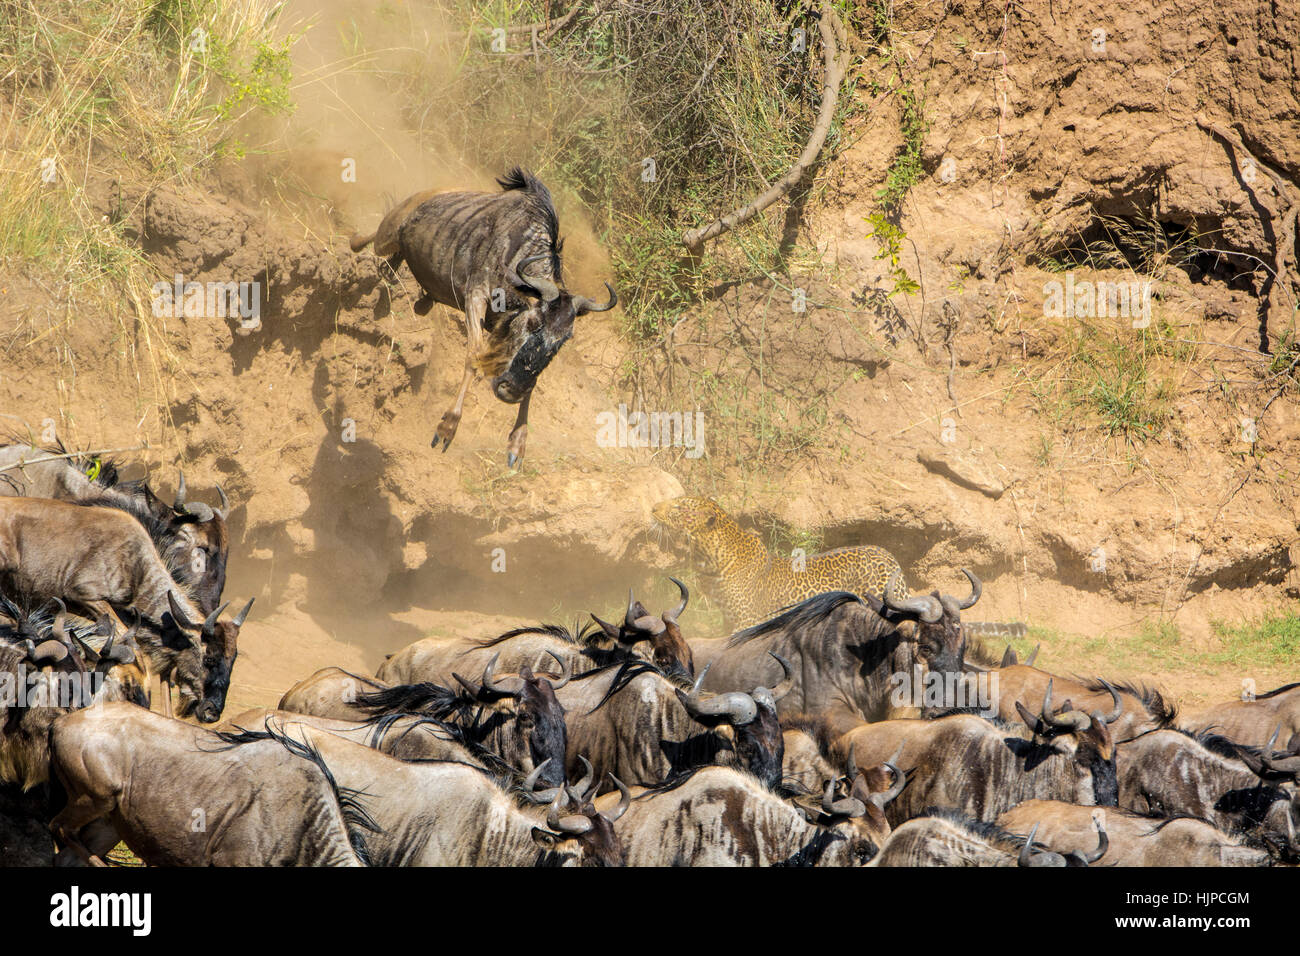 African Leopard, Panthera pardus, stalking, hunting Wildebeest jumping, Connochaetes taurinus, Great Migration, Stock Photo